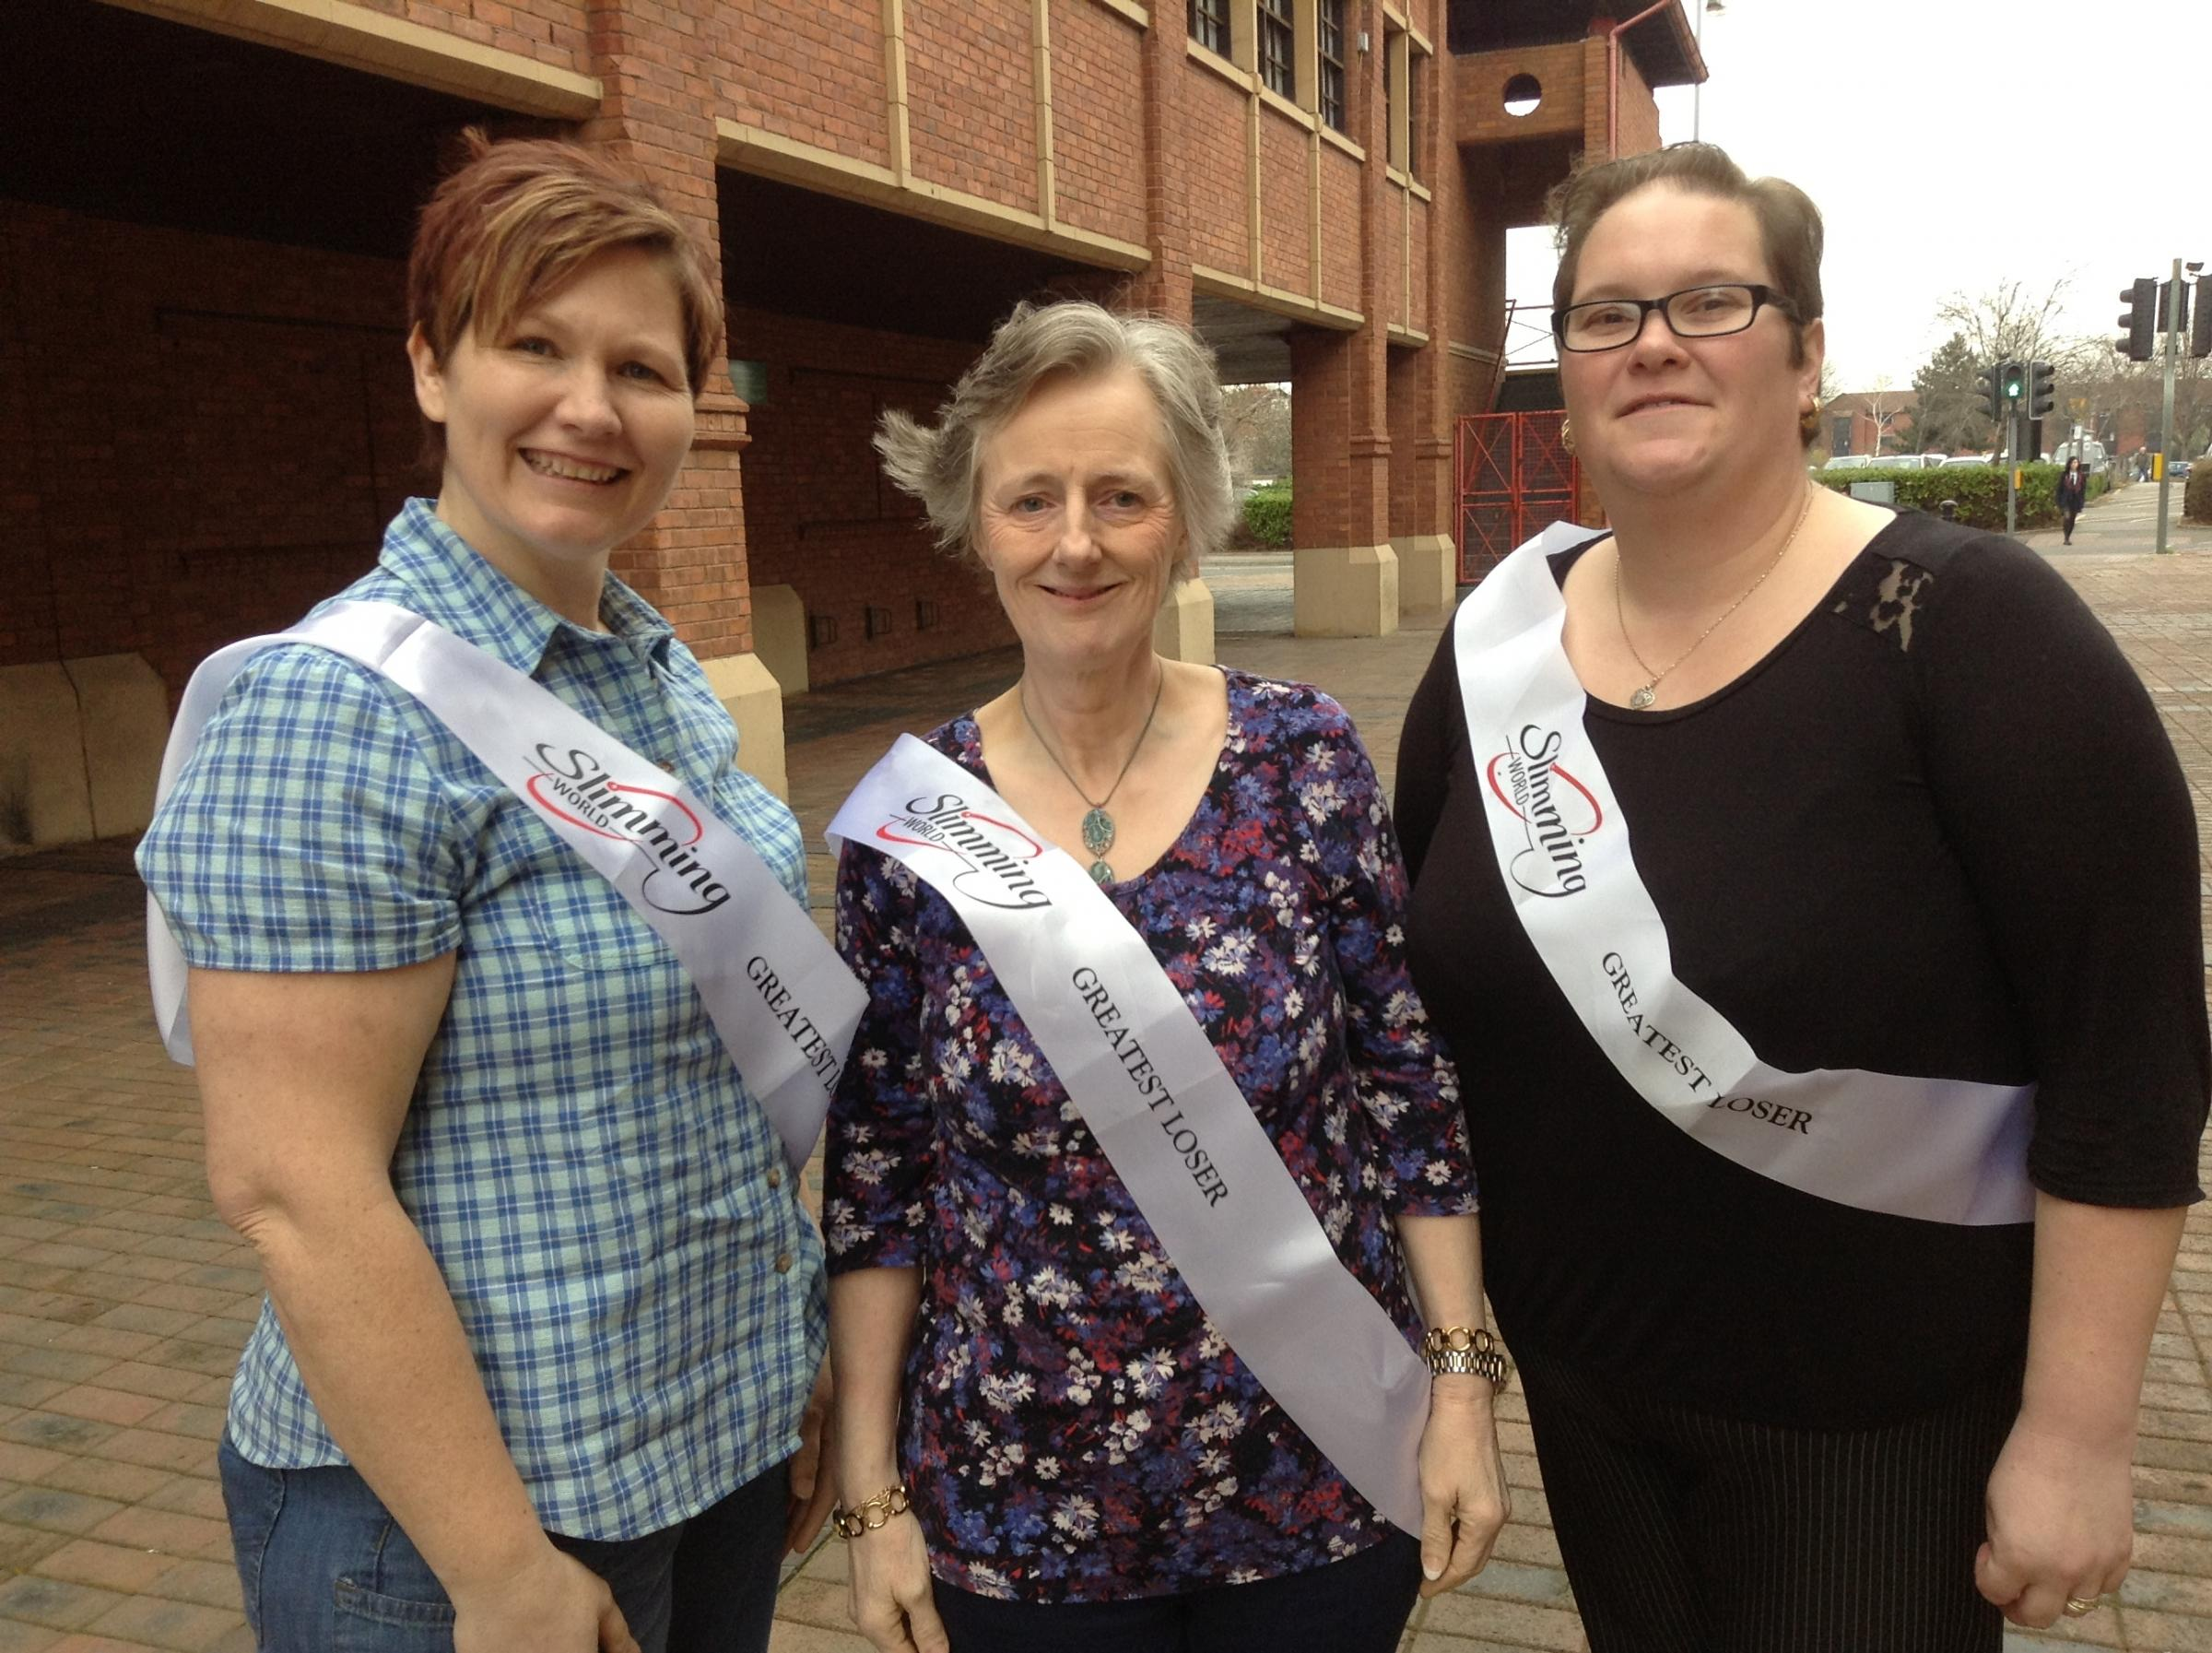 Nichola Temlett, Genine Mathews, and Sharron Griffiths have each been crowned 'greatest loser' after losing over 17st between them.